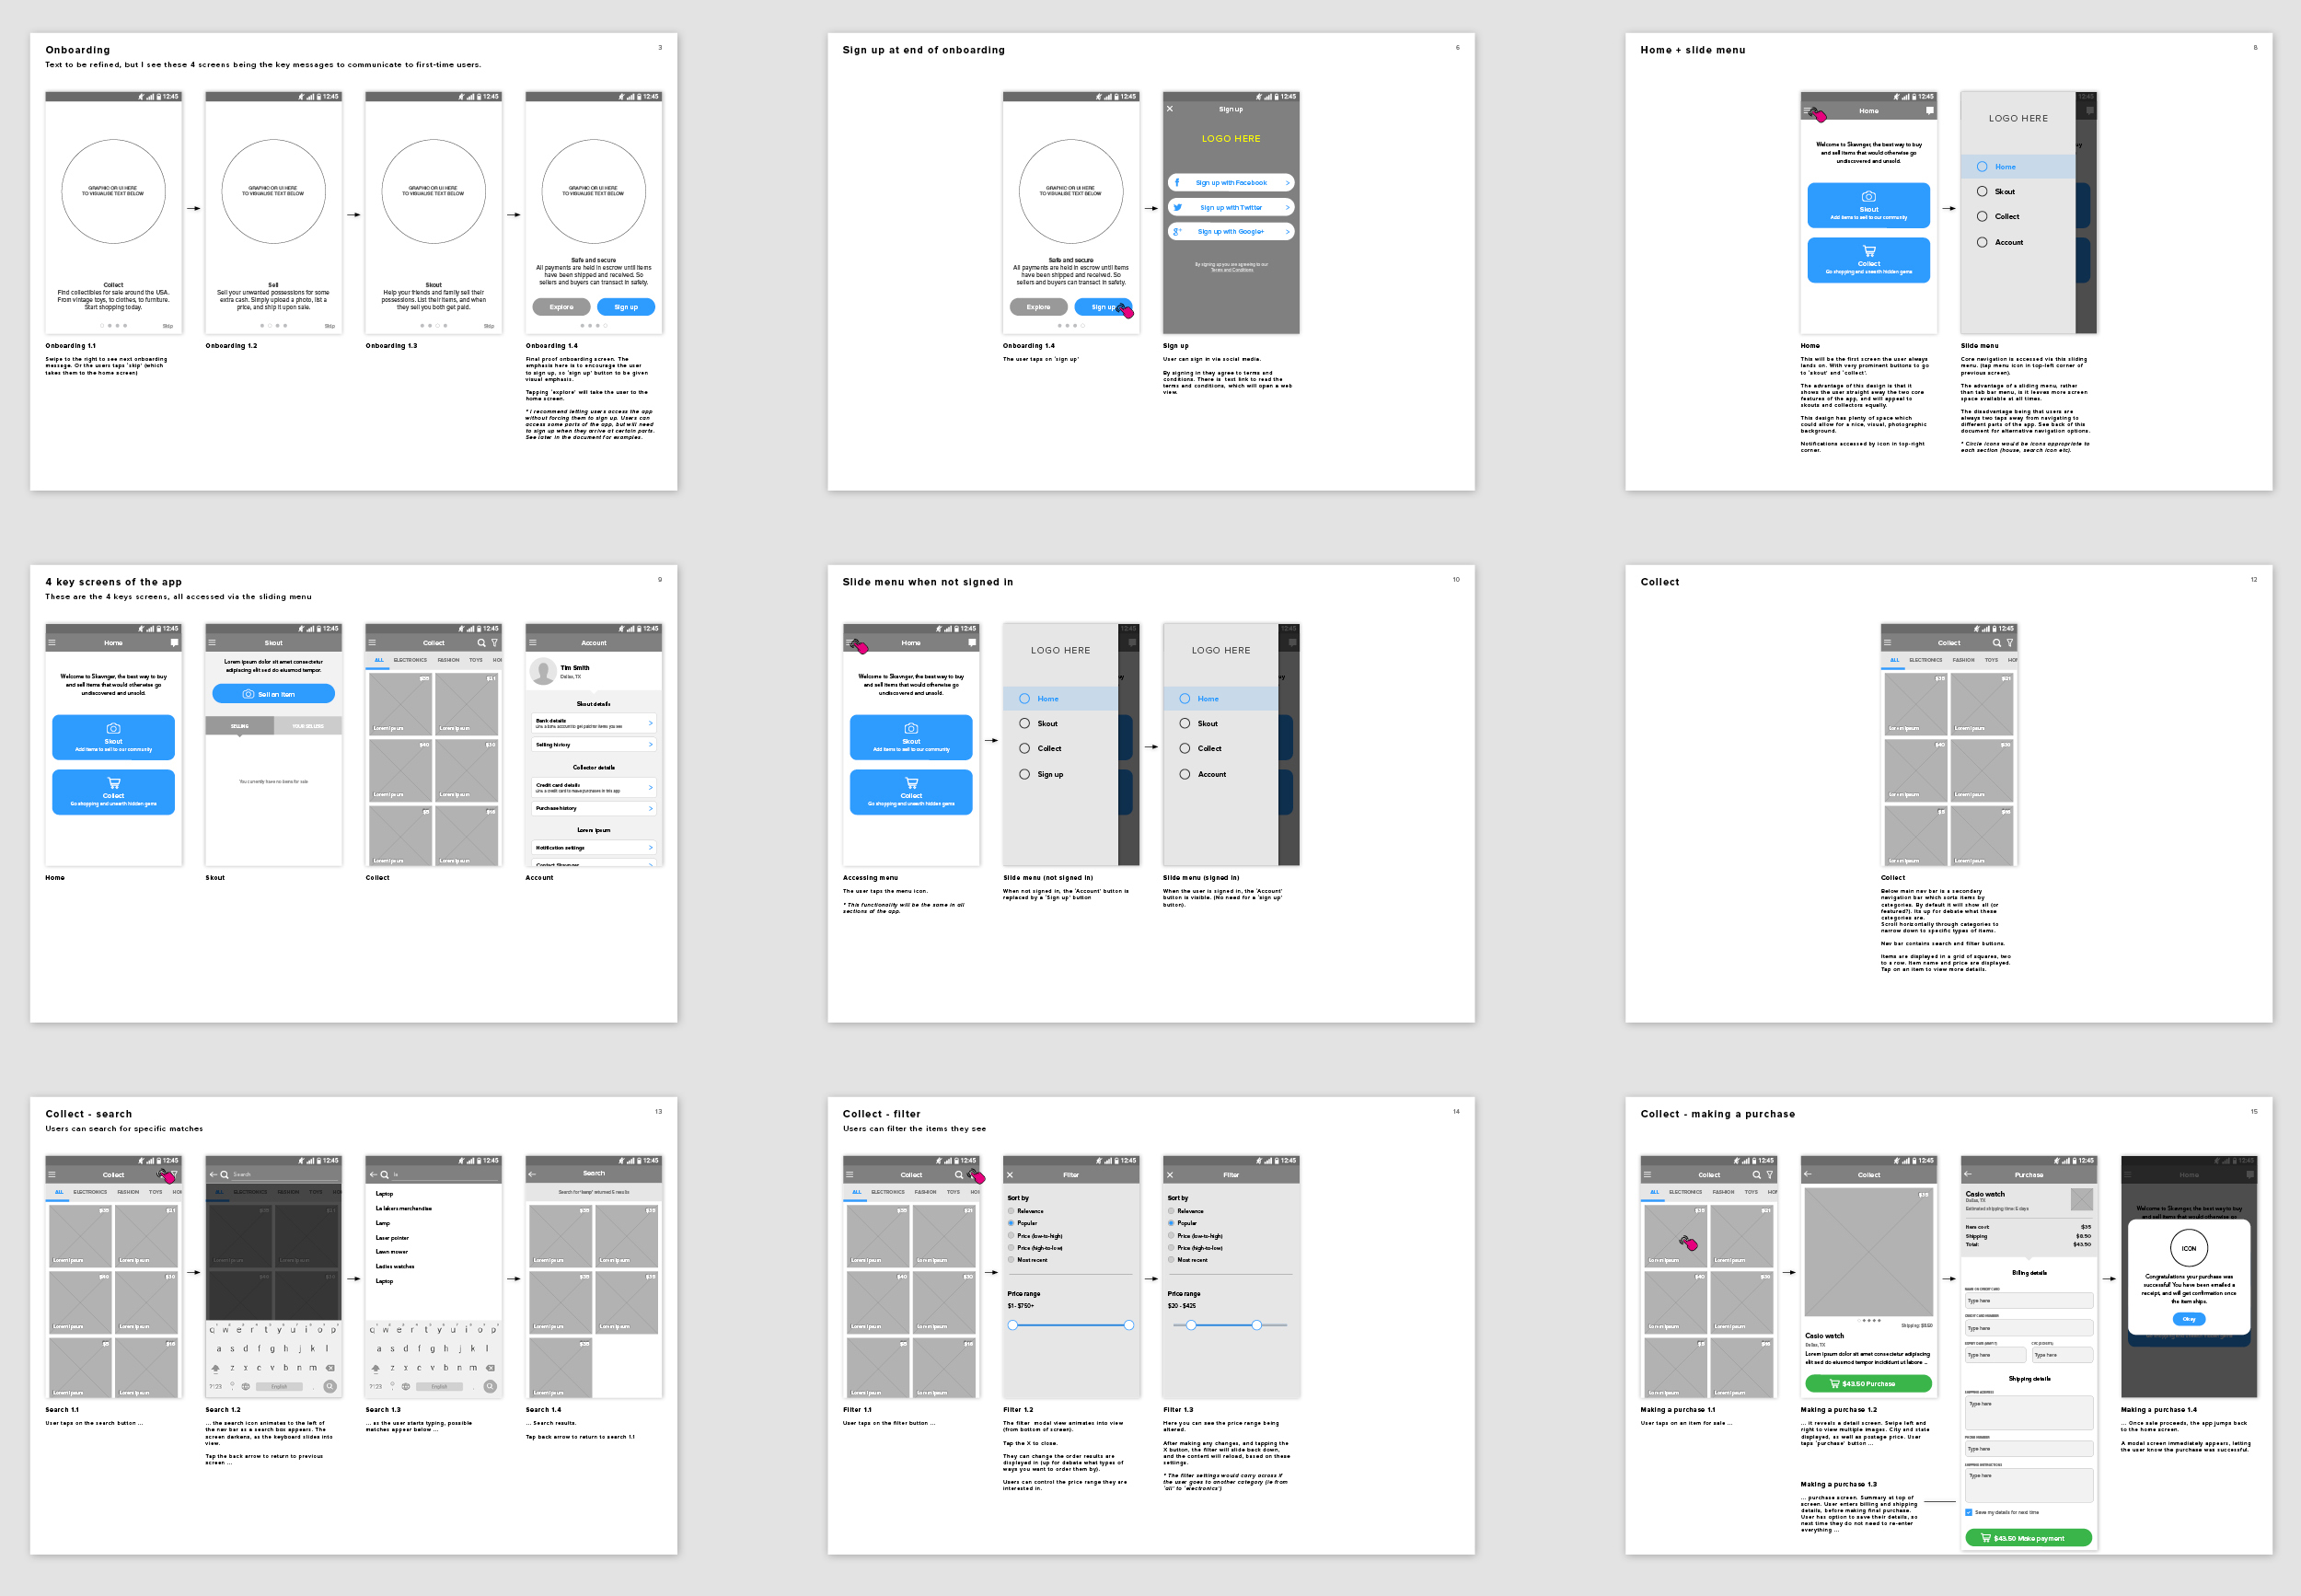 Some pages from the initial Android wireframes document.